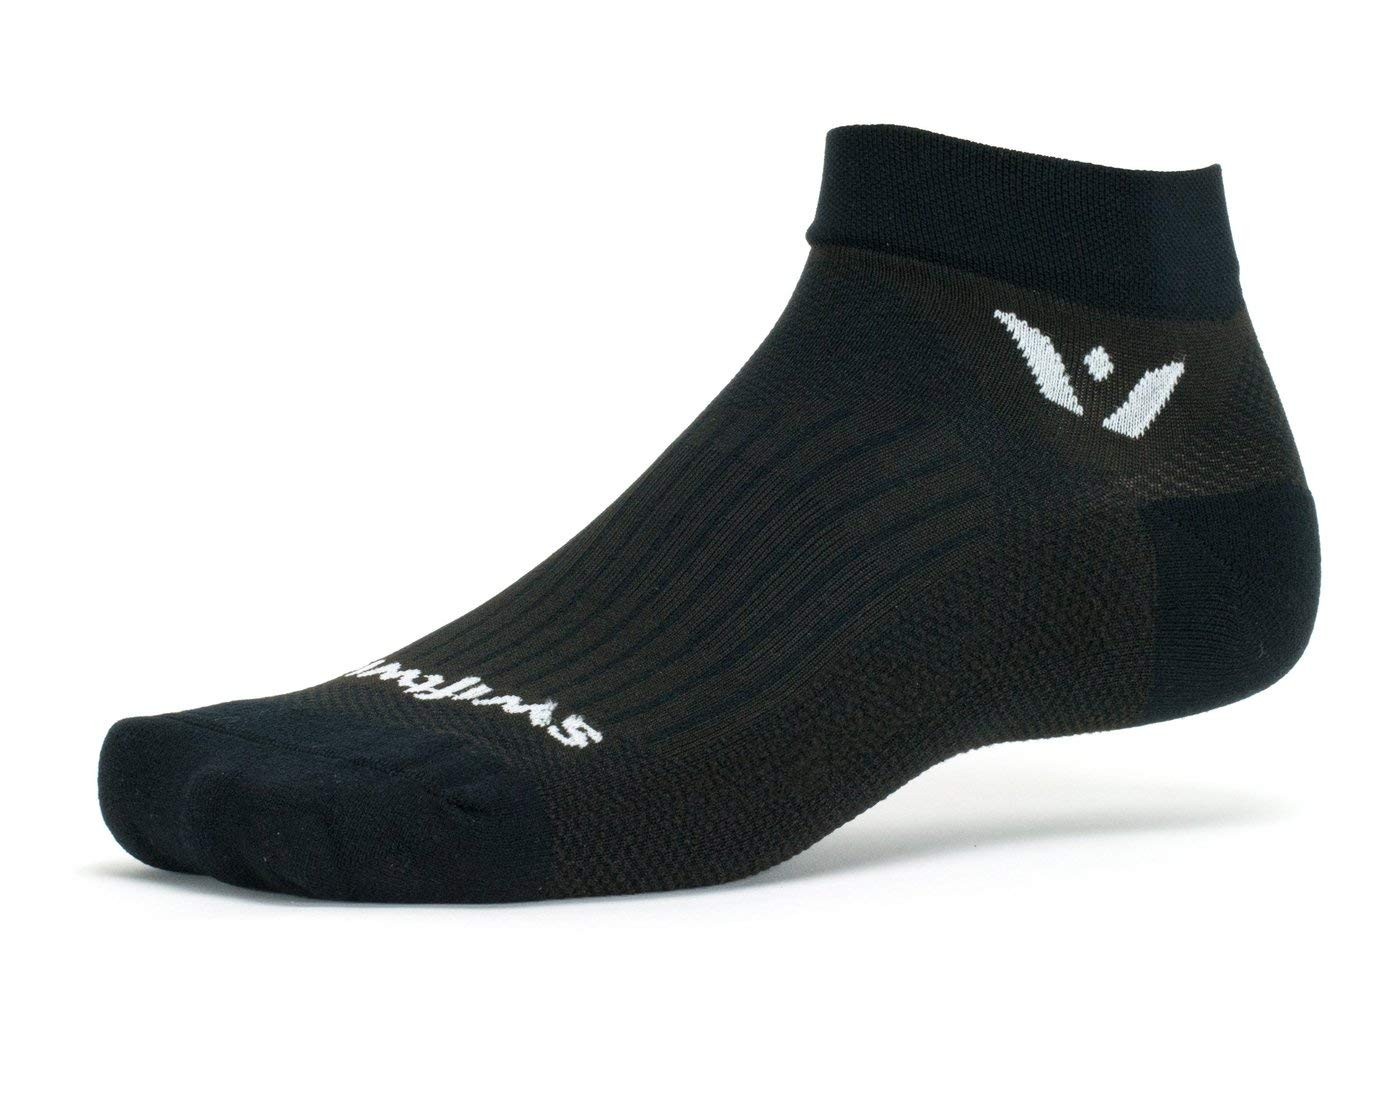 Swiftwick- PERFORMANCE ONE Golf & Running Socks (1 or 3 Pairs), Durable Comfort